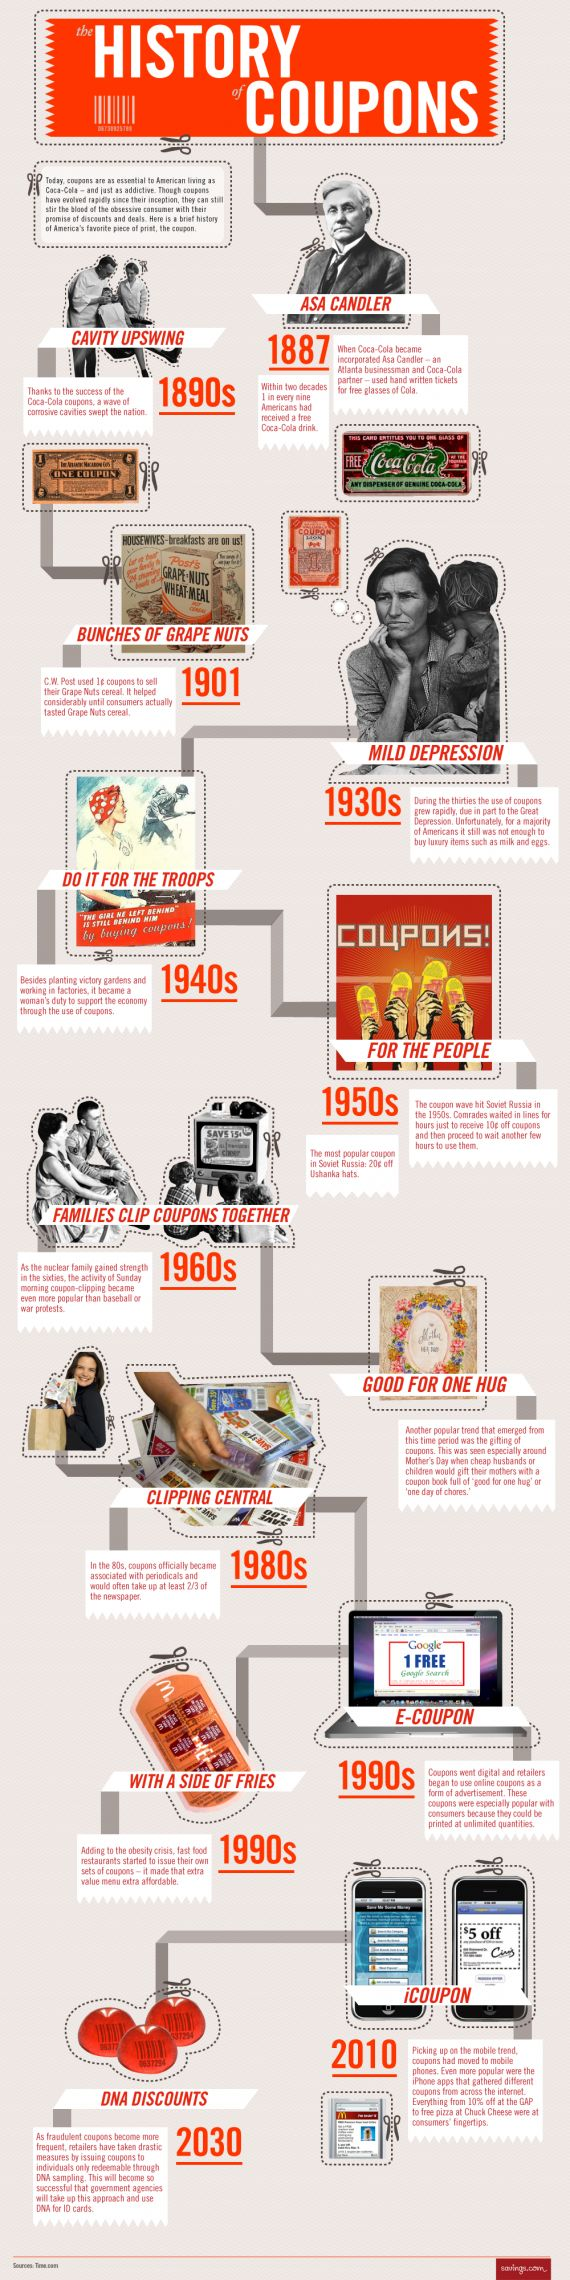 29 best 007 coupons comeback images on pinterest digital marketing the history of coupons powerfulinfographic fandeluxe Choice Image